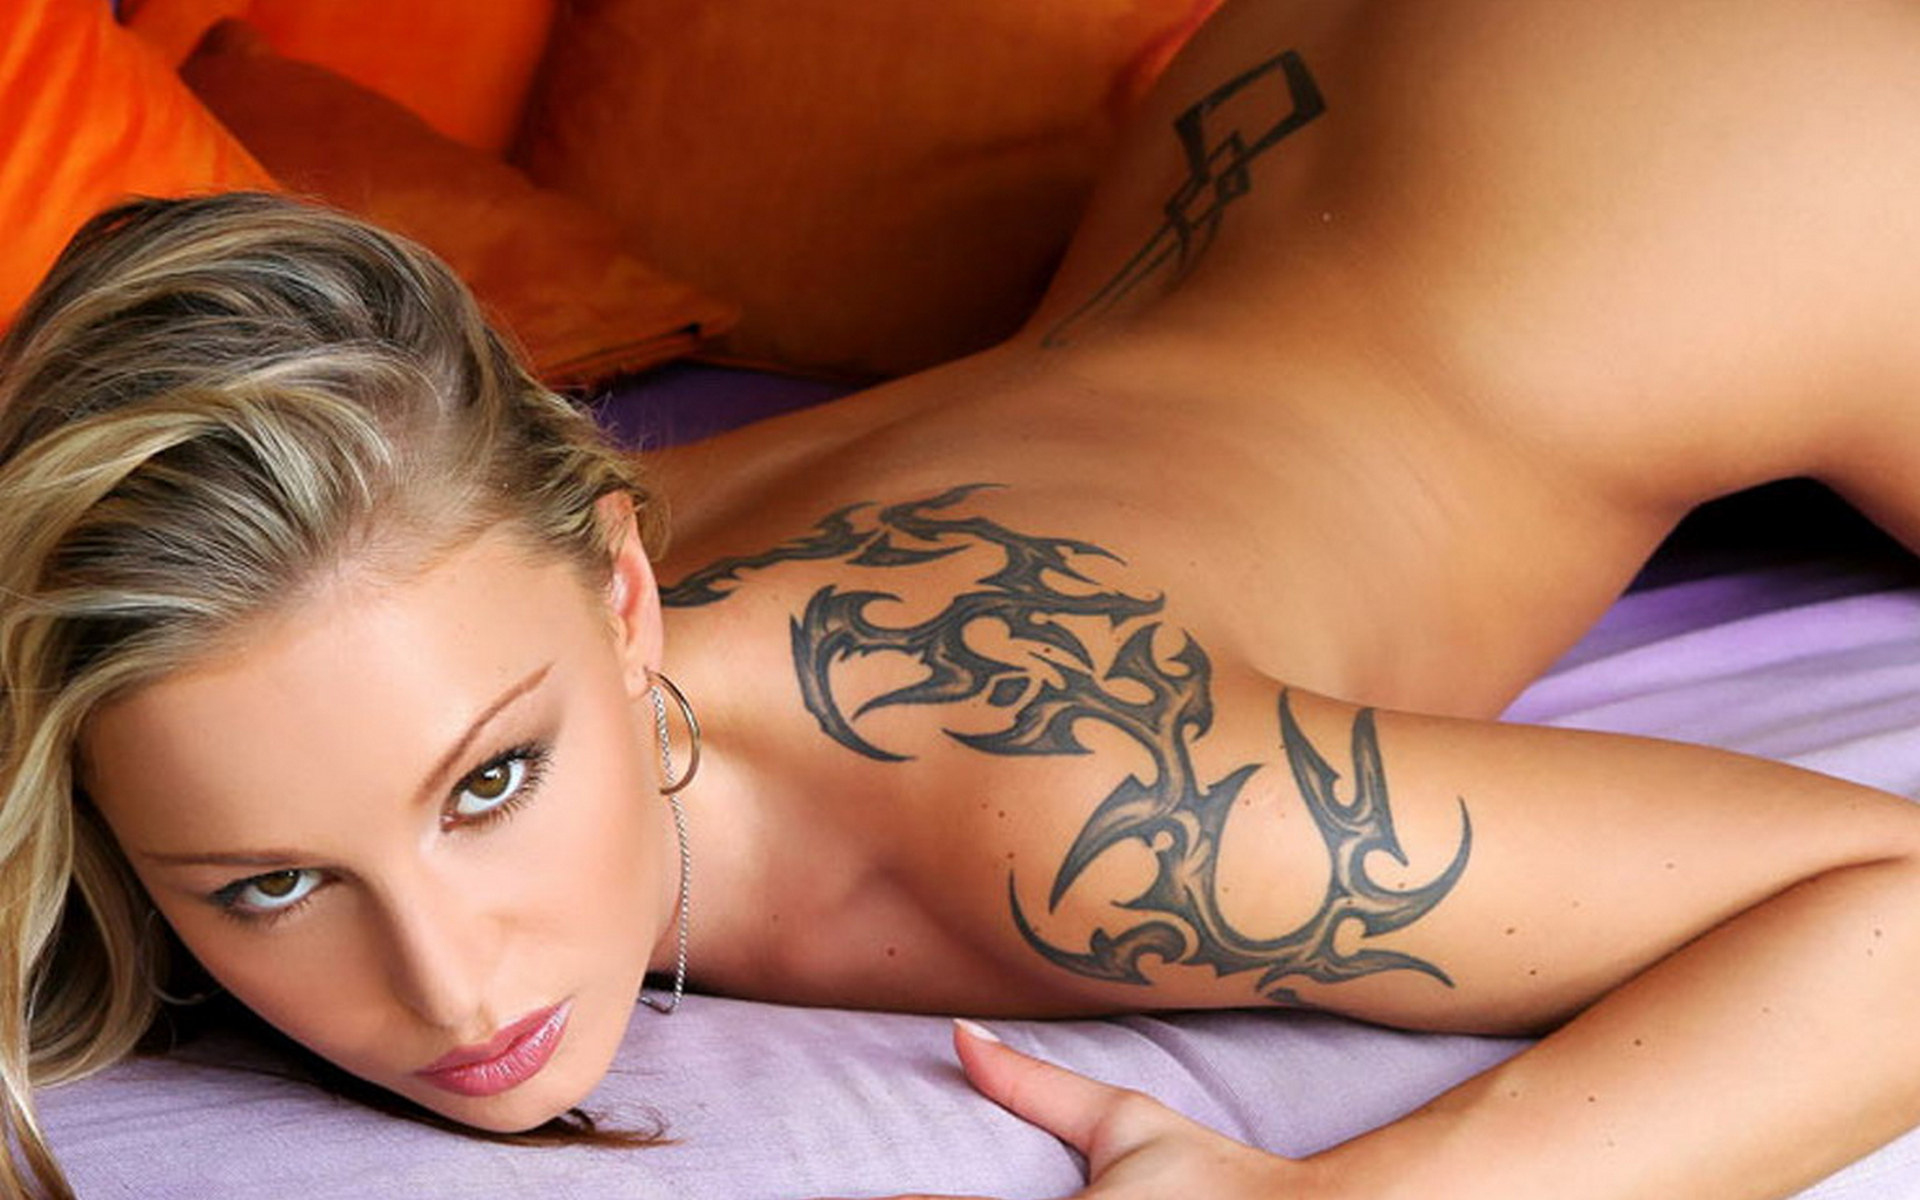 Tattoo erotic